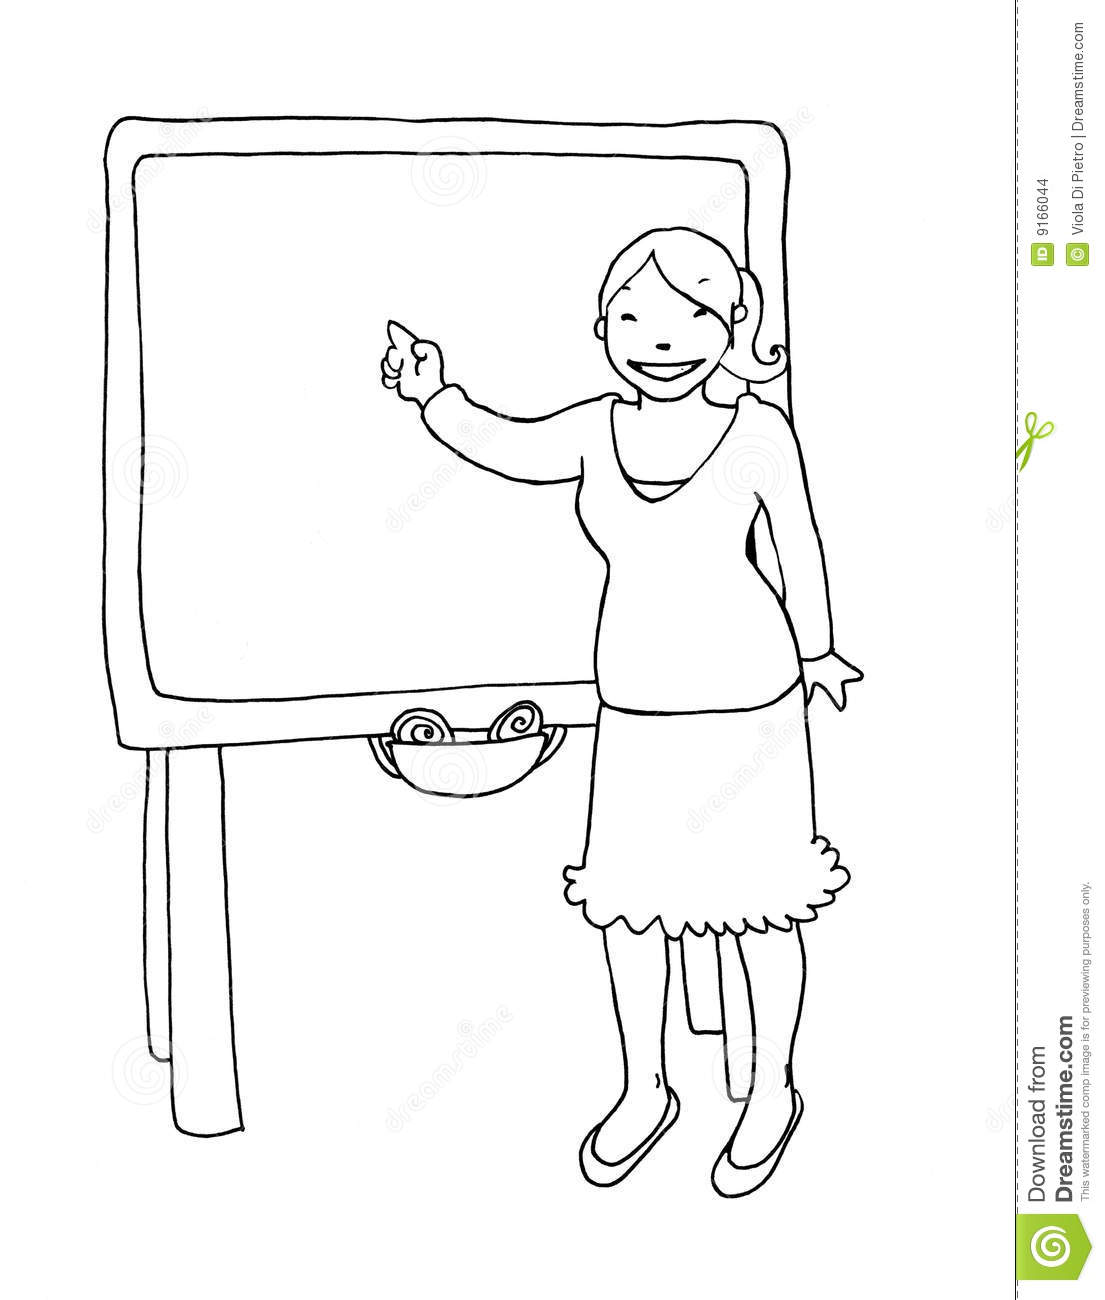 Clip Art Teacher Clipart Black And White teacher black and white clipart kid at the blackboard stock images image